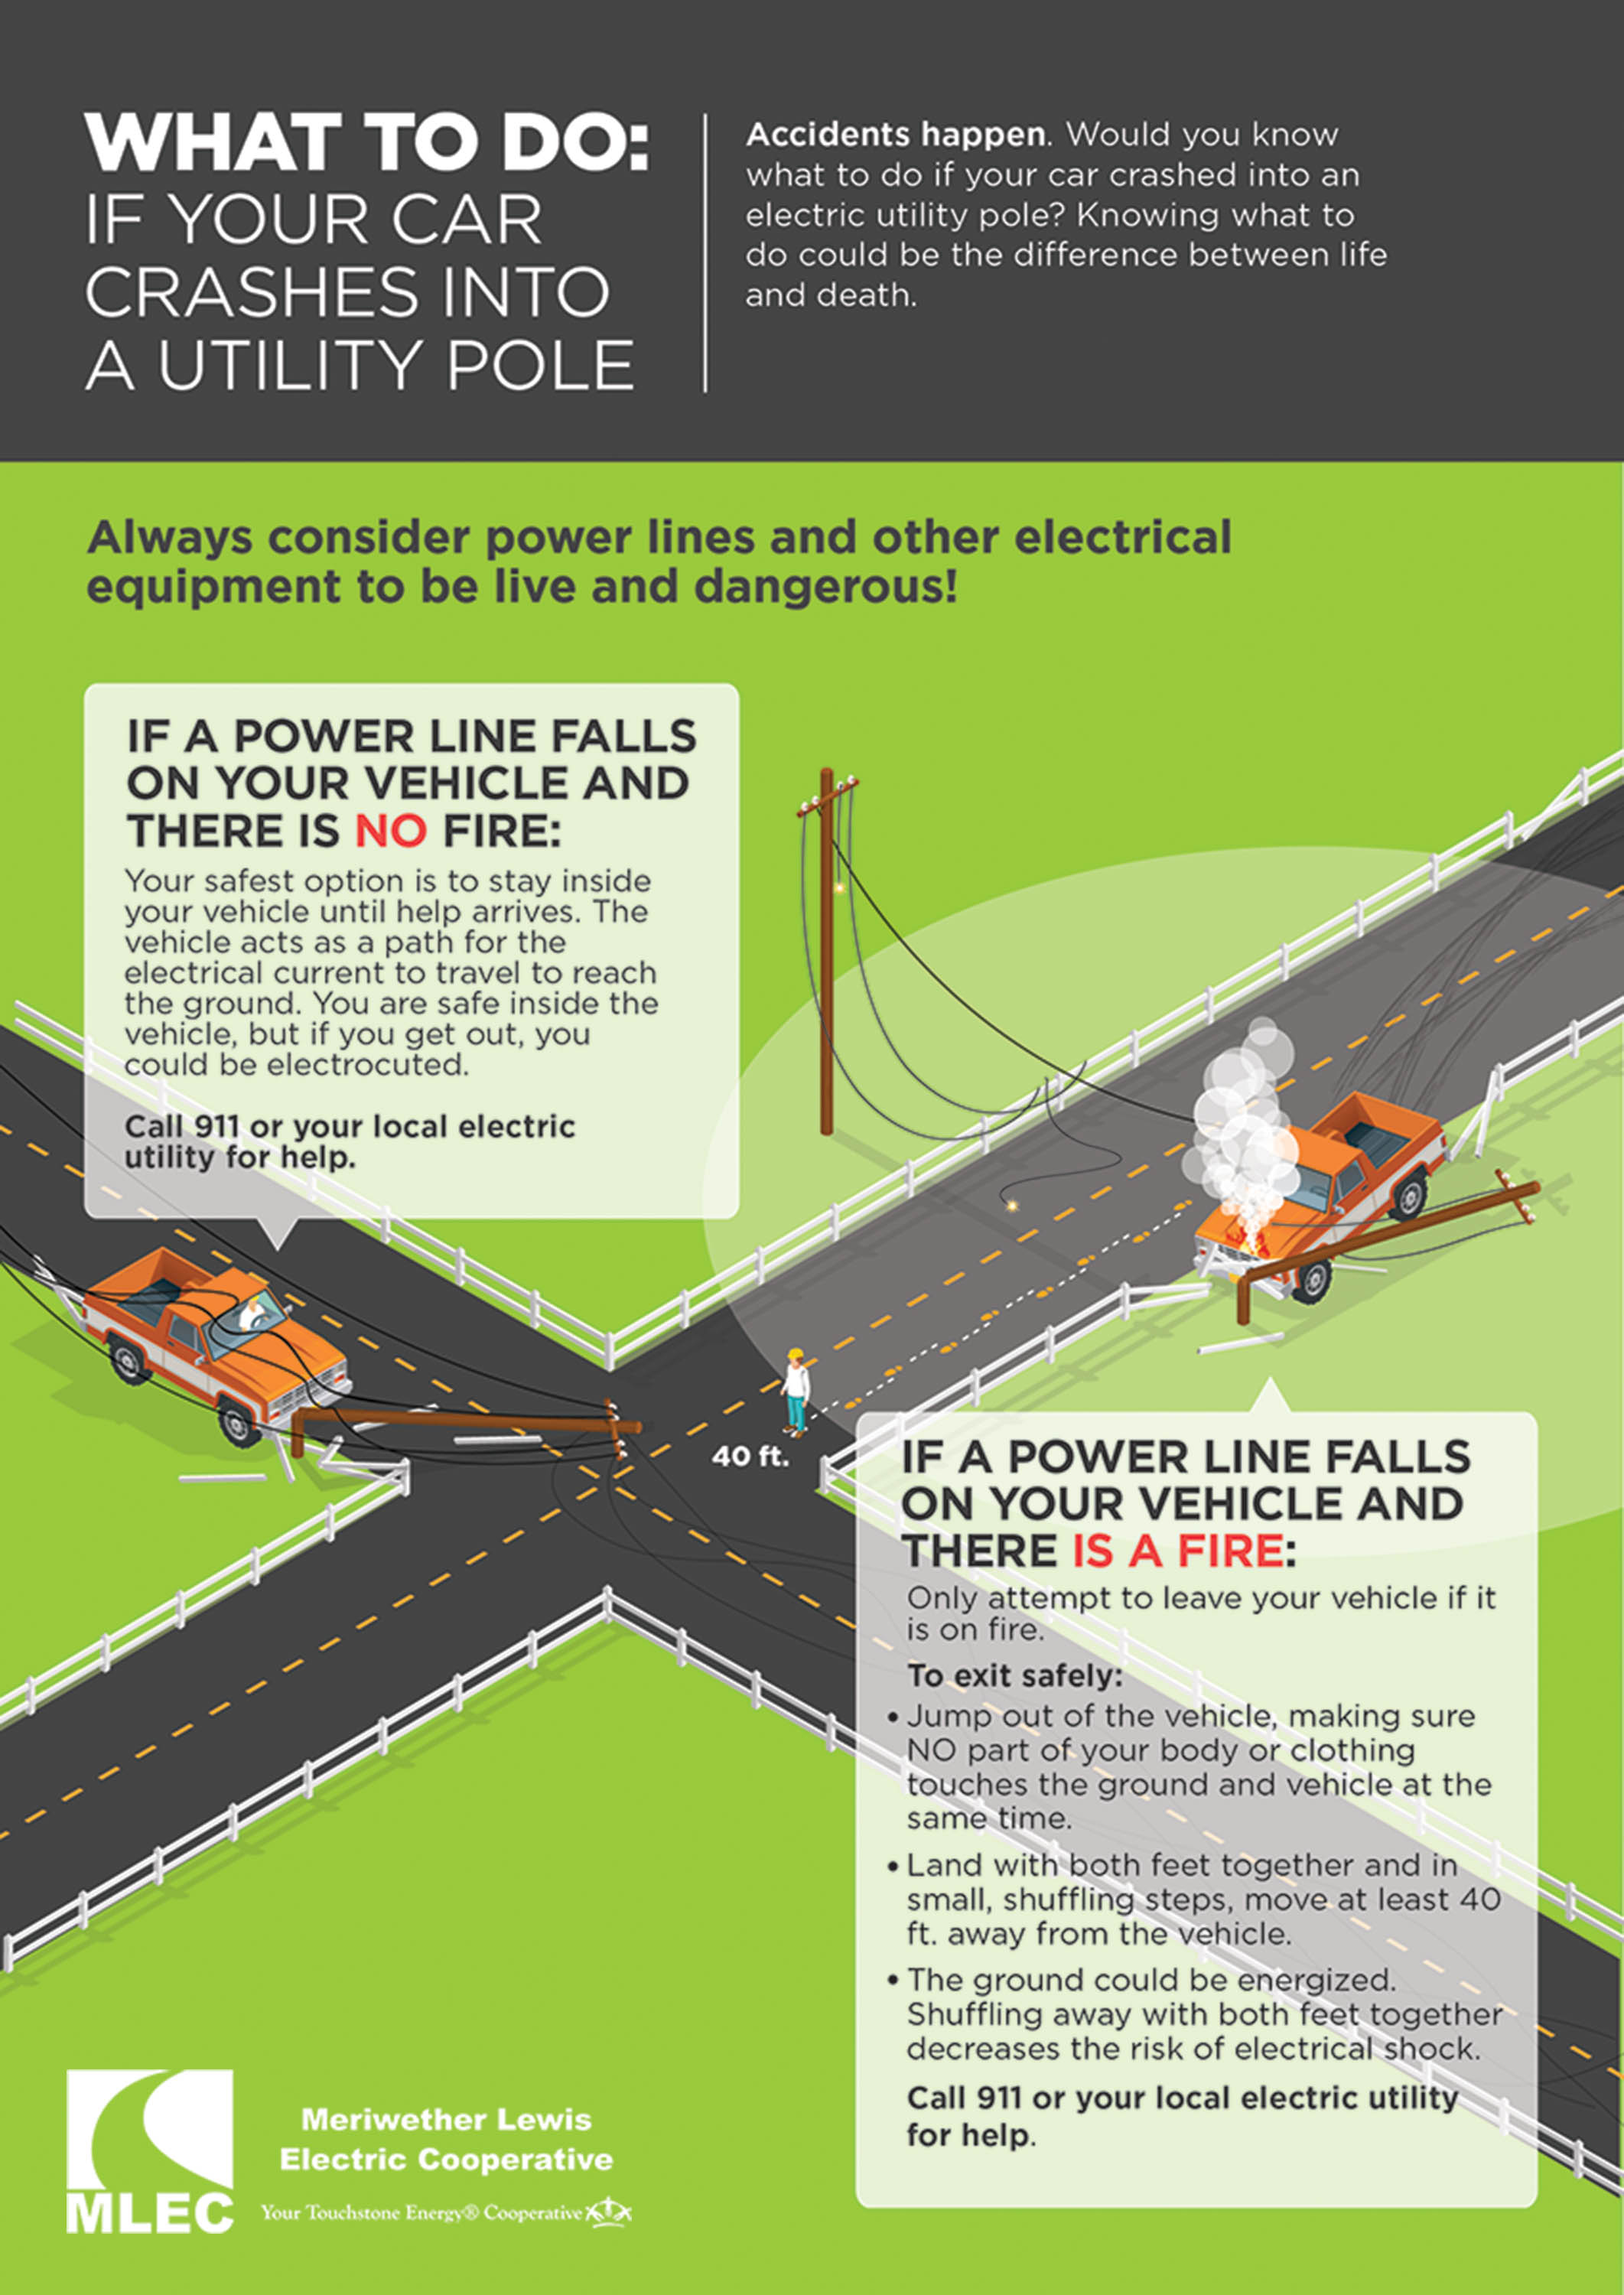 What to do if your car crashes into a utility pole